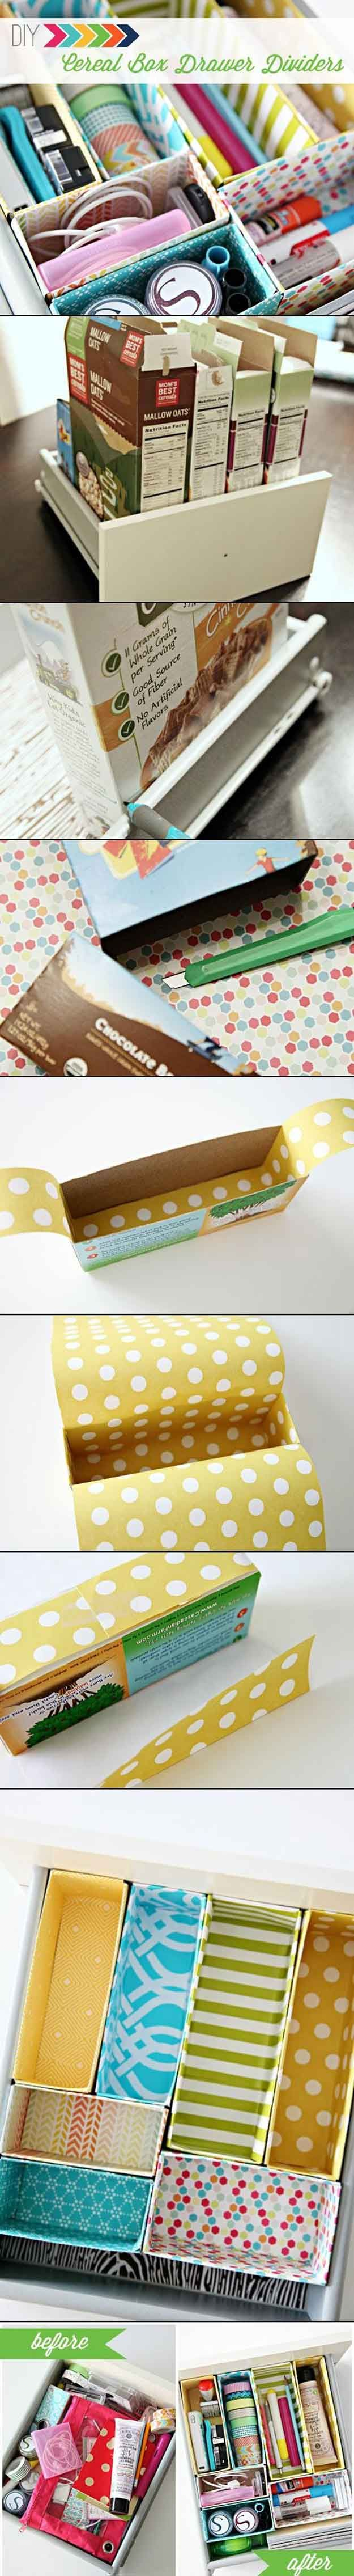 DIY Cereal Box Organizer and Divider Tutorials | http://diyready.com/28-things-you-can-make-from-cereal-boxes/